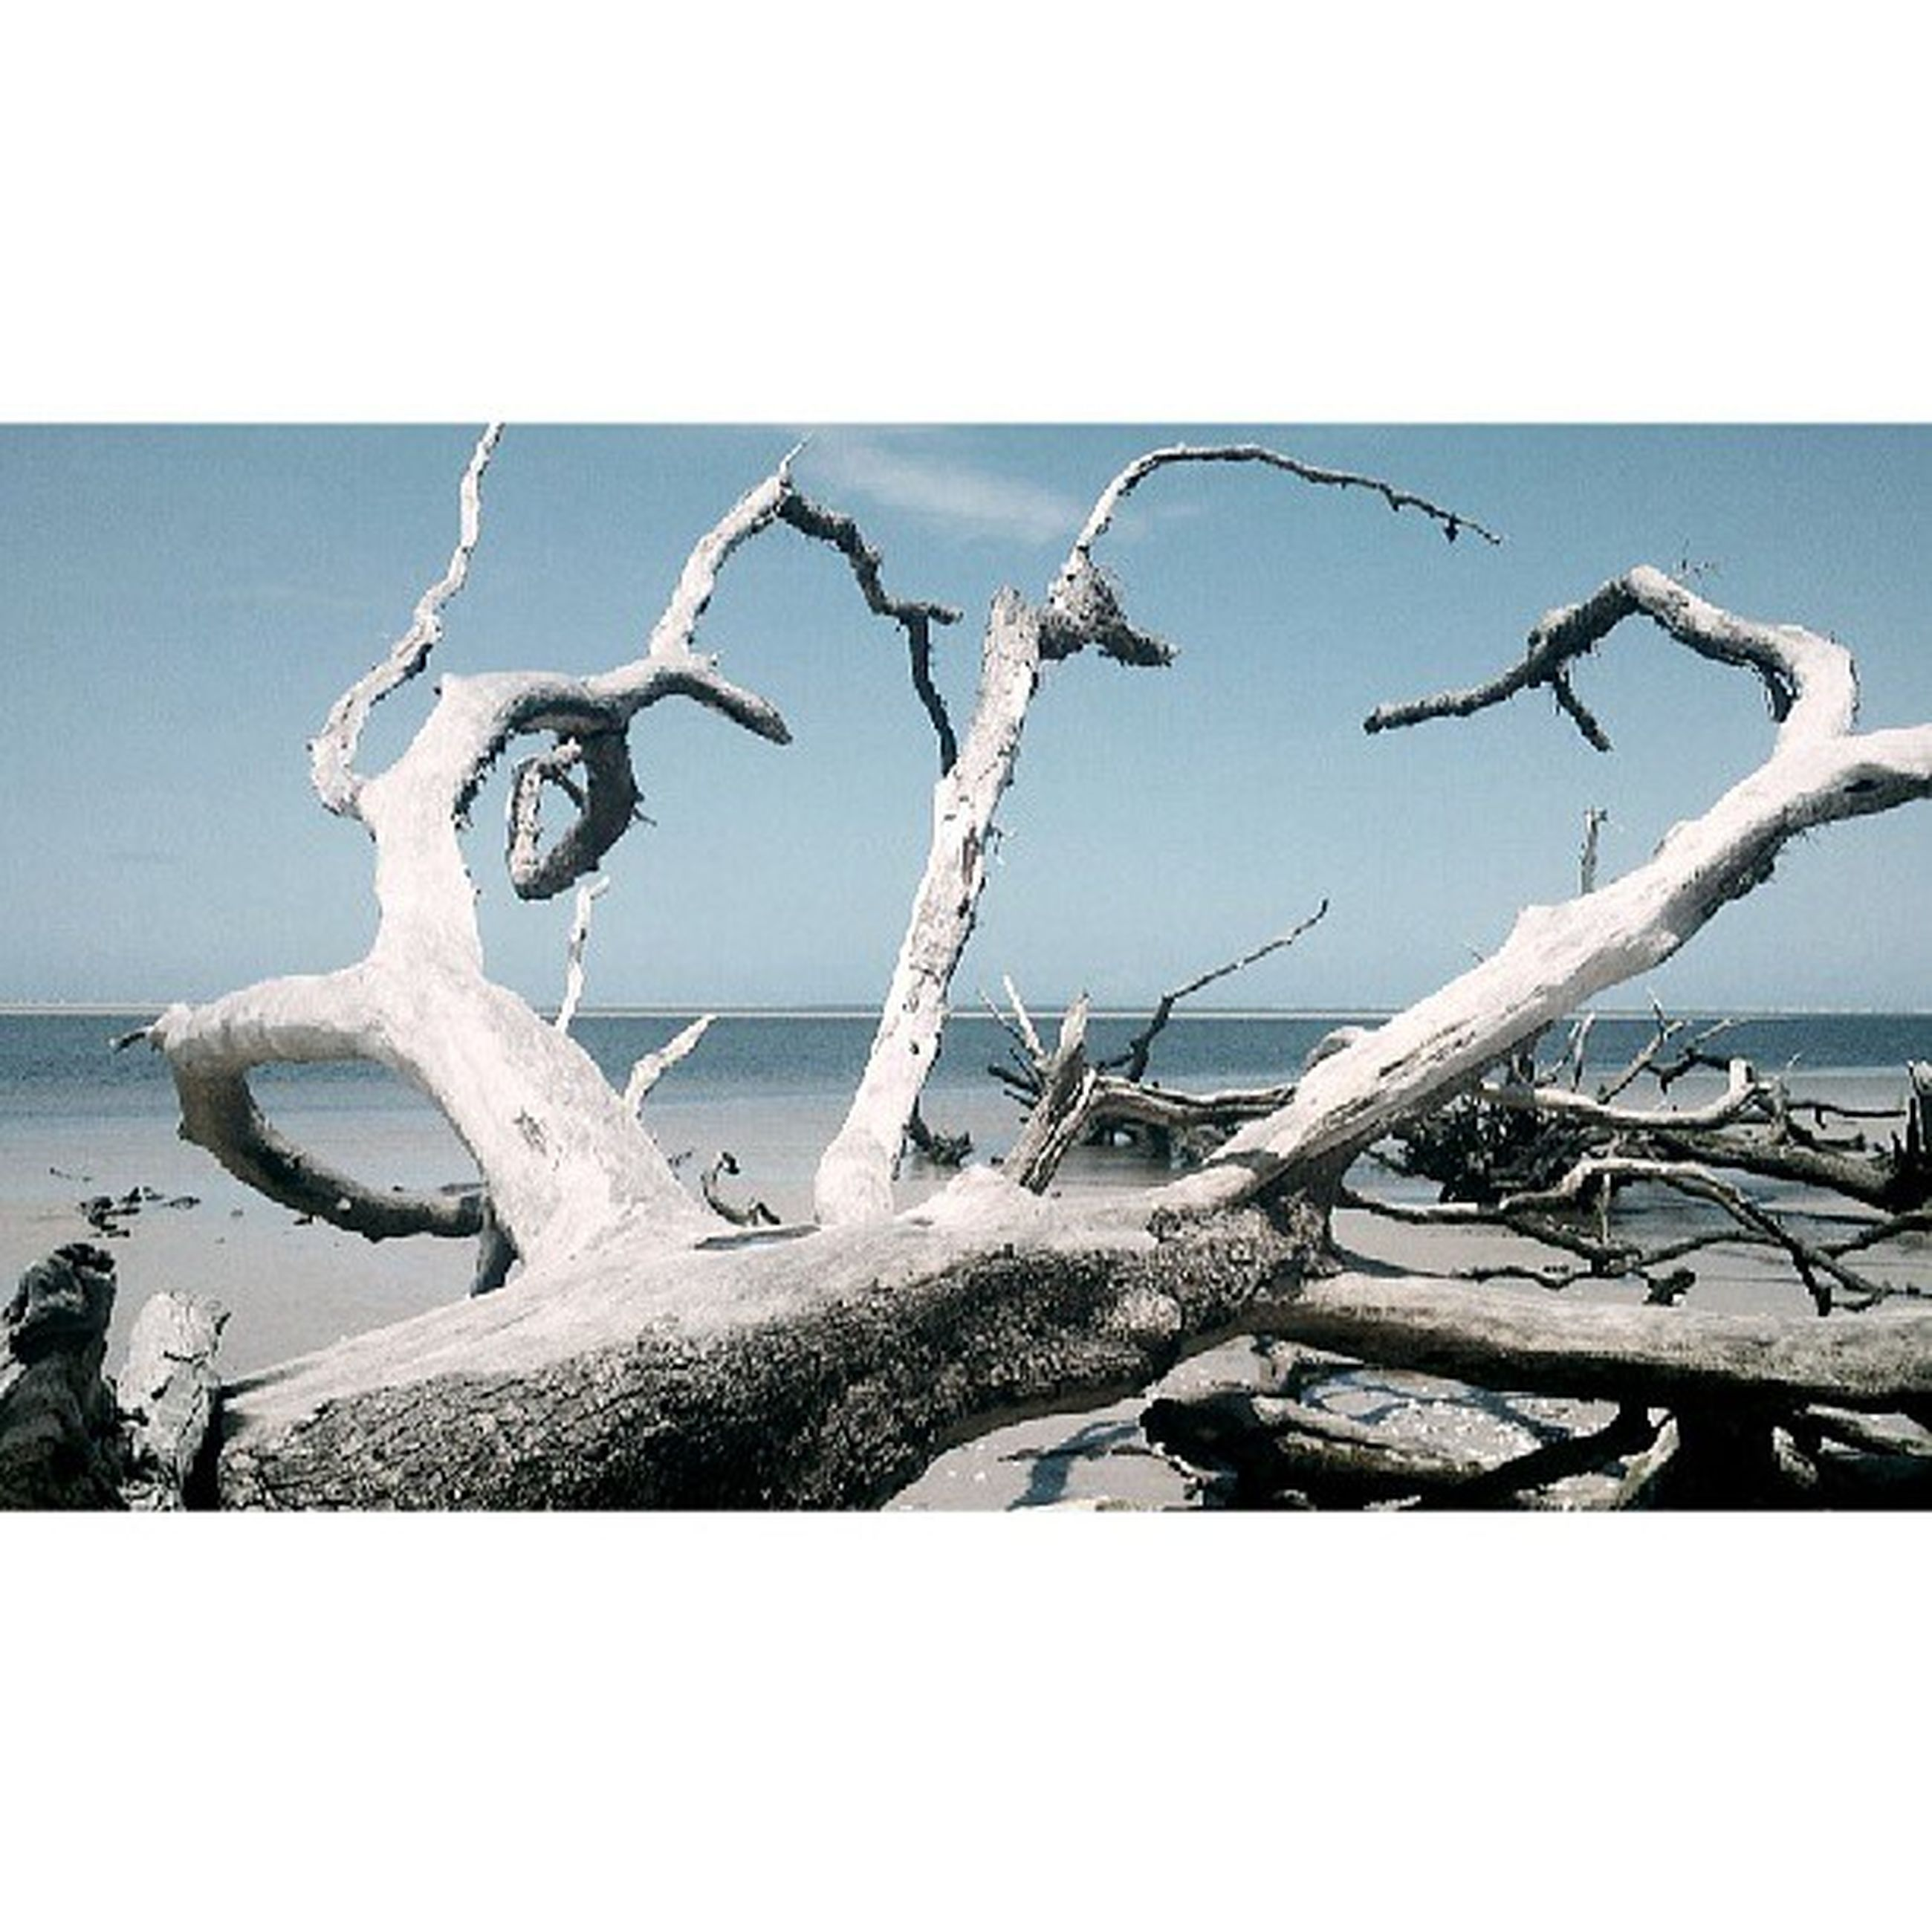 transfer print, auto post production filter, sea, nature, day, water, outdoors, no people, close-up, sunlight, tranquility, beach, sky, damaged, abandoned, branch, plant, clear sky, broken, wood - material